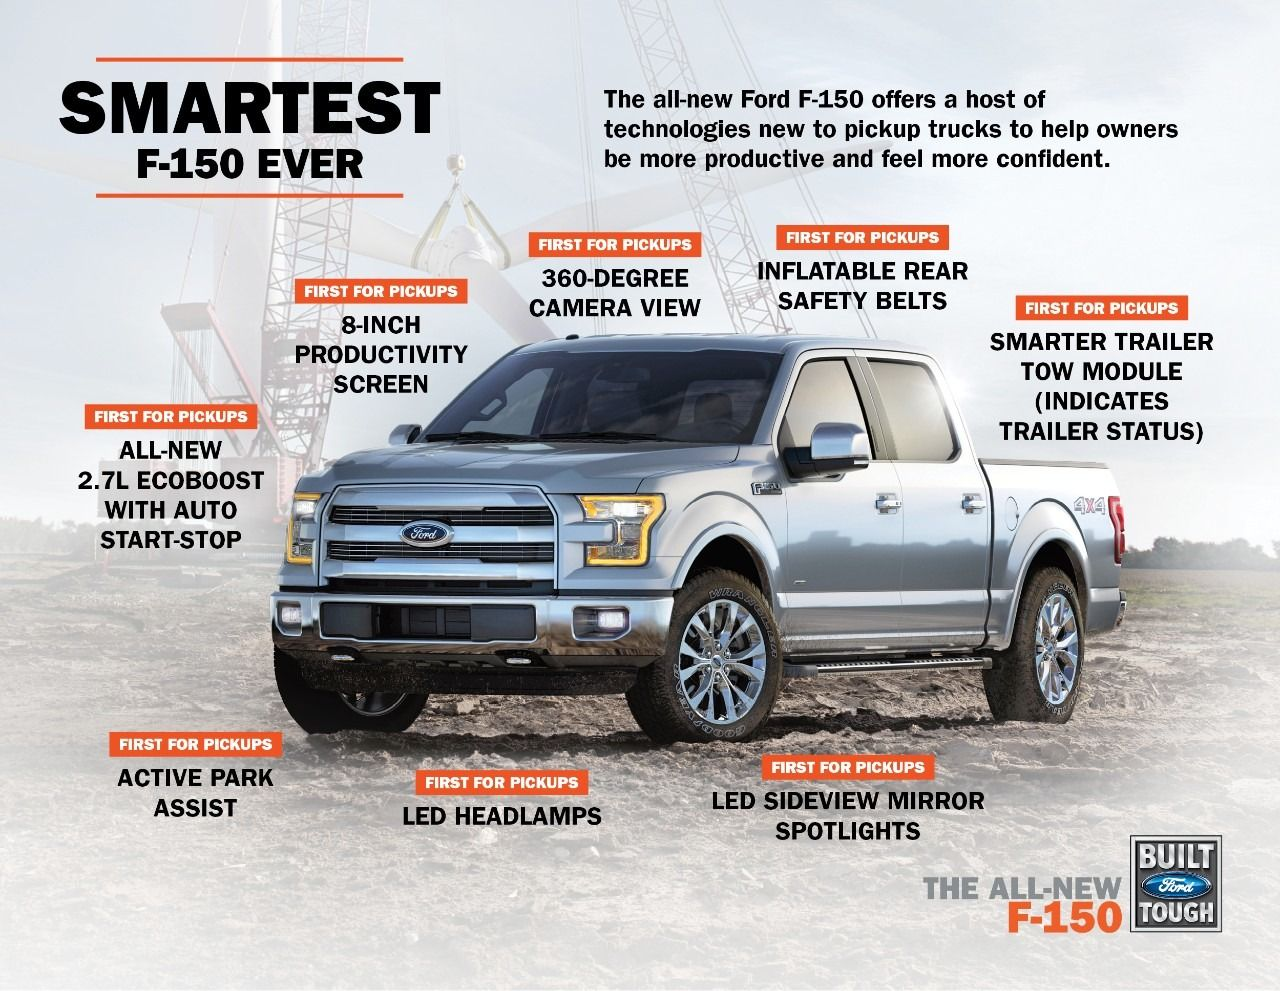 1000 images about f 150 on pinterest ford 2015 pickup trucks and ford trucks